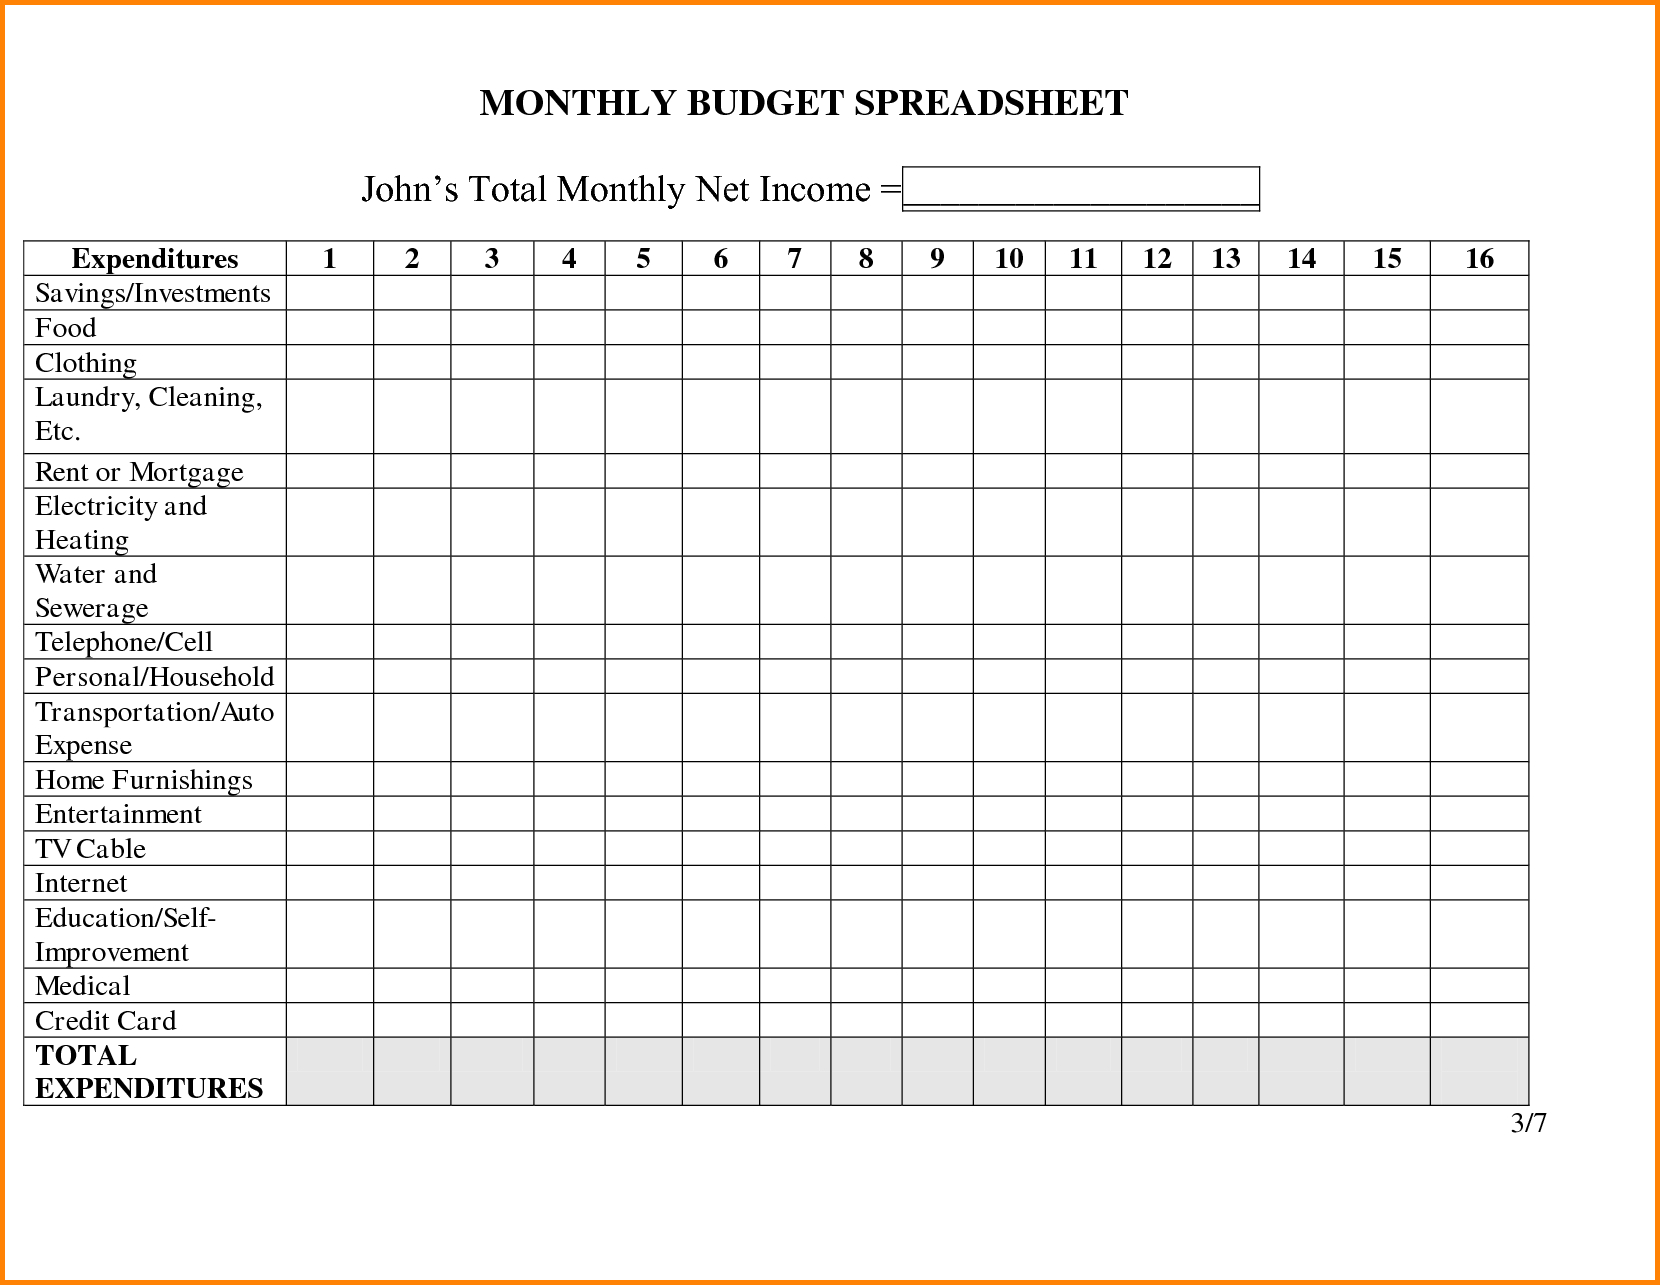 Monthly Household Budget Adsheet Family Template Worksheet